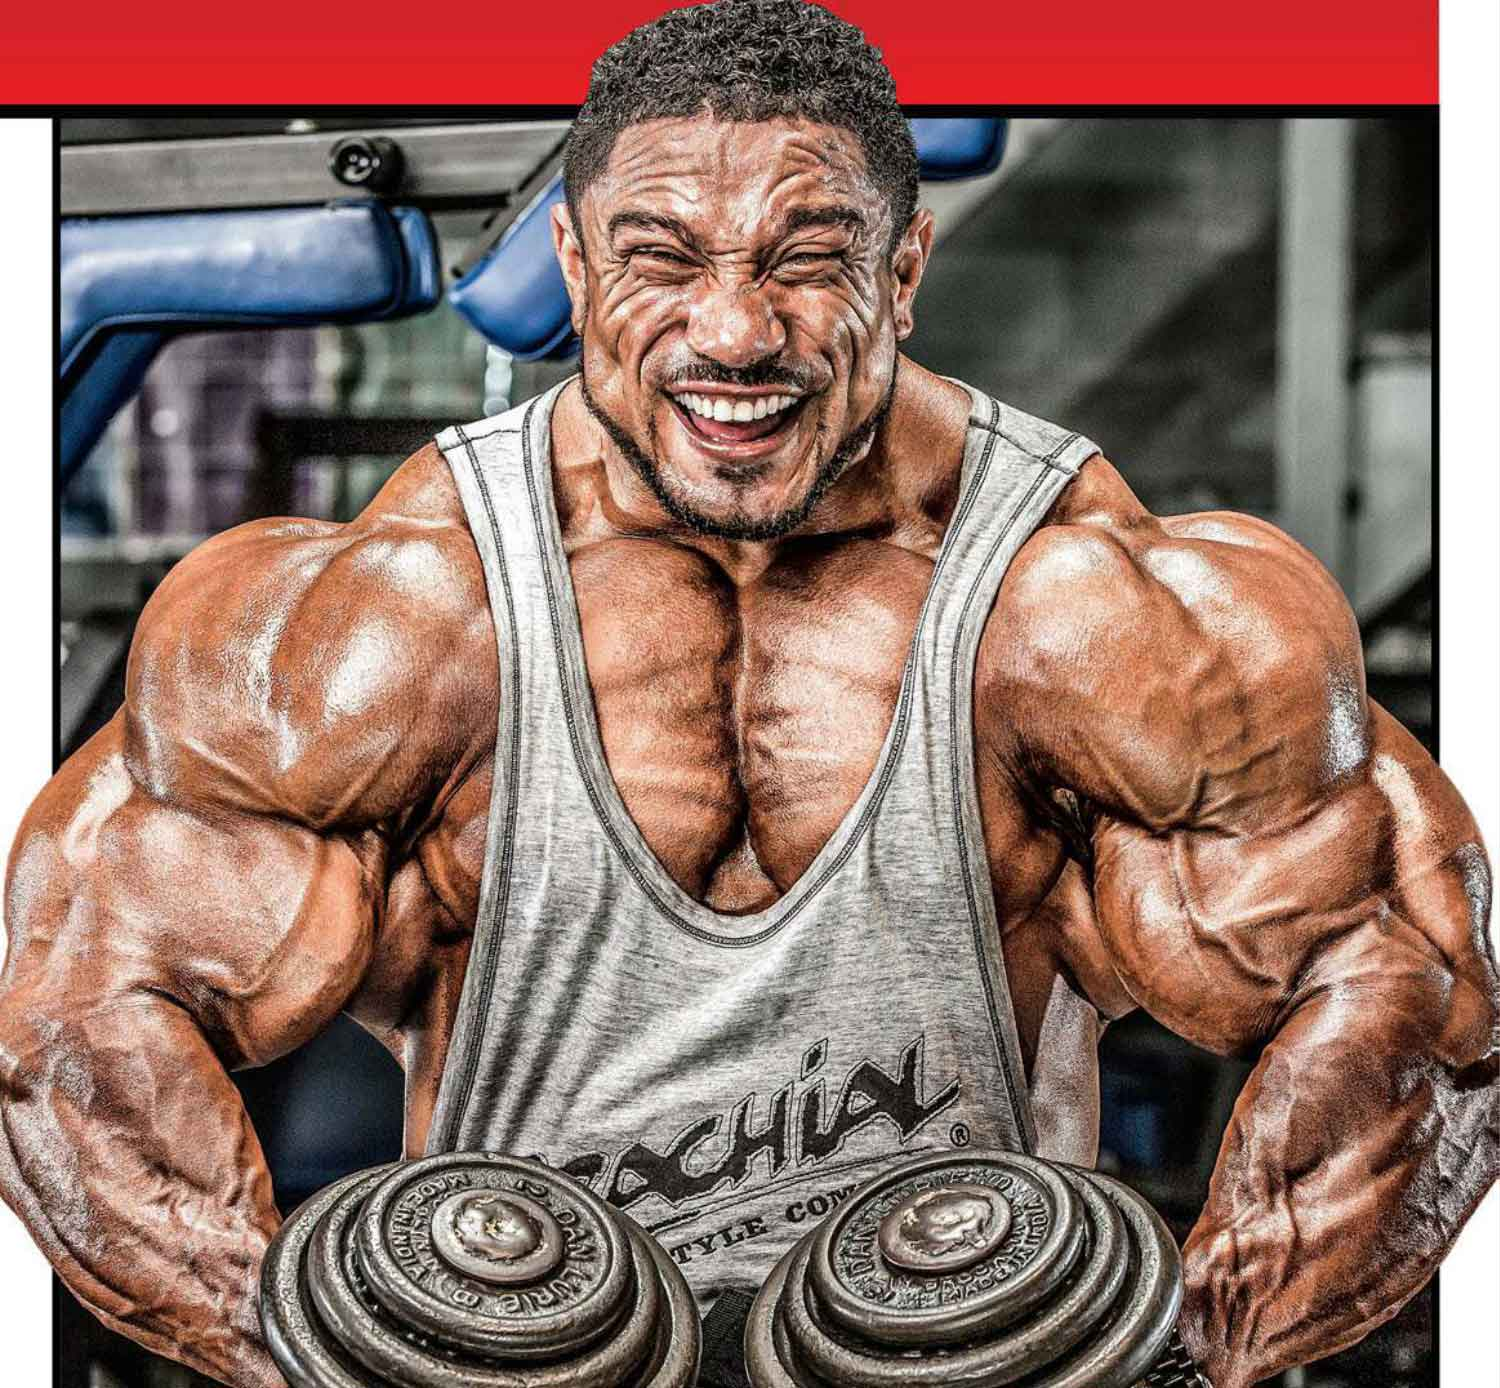 The 2016 Mr. Olympia Line Up – Muscular Development